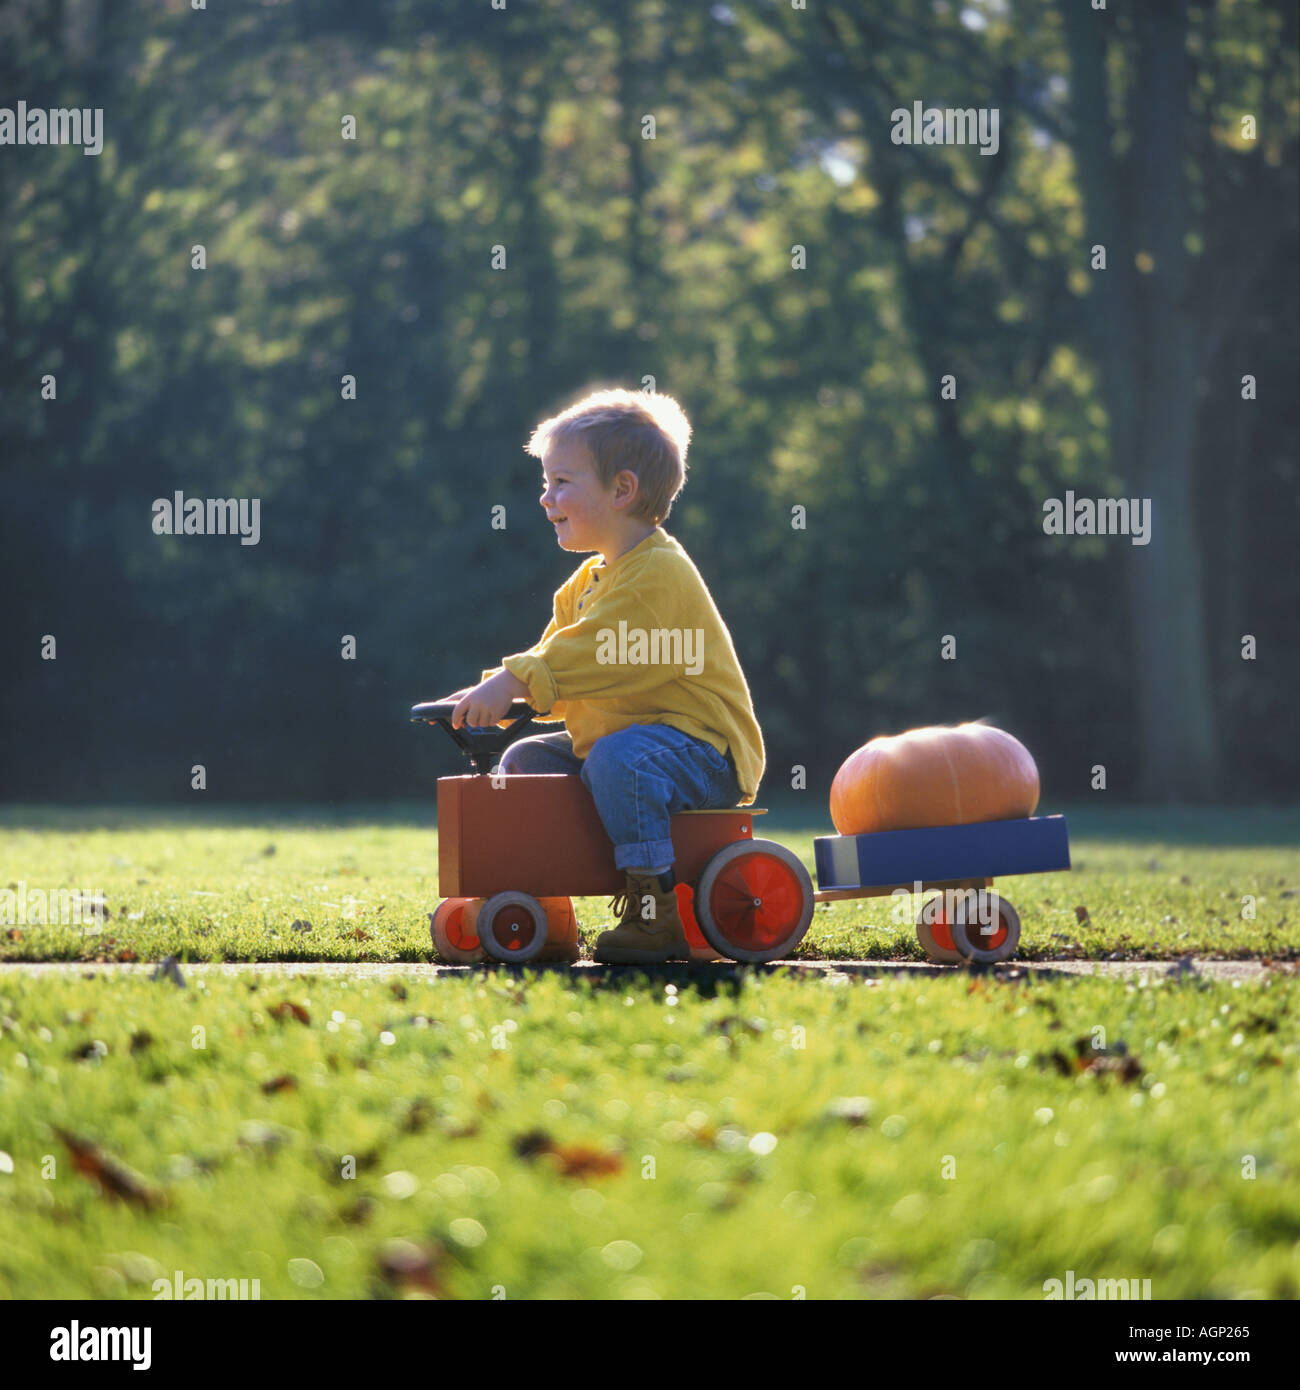 boy transporting a pumpkin - Stock Image